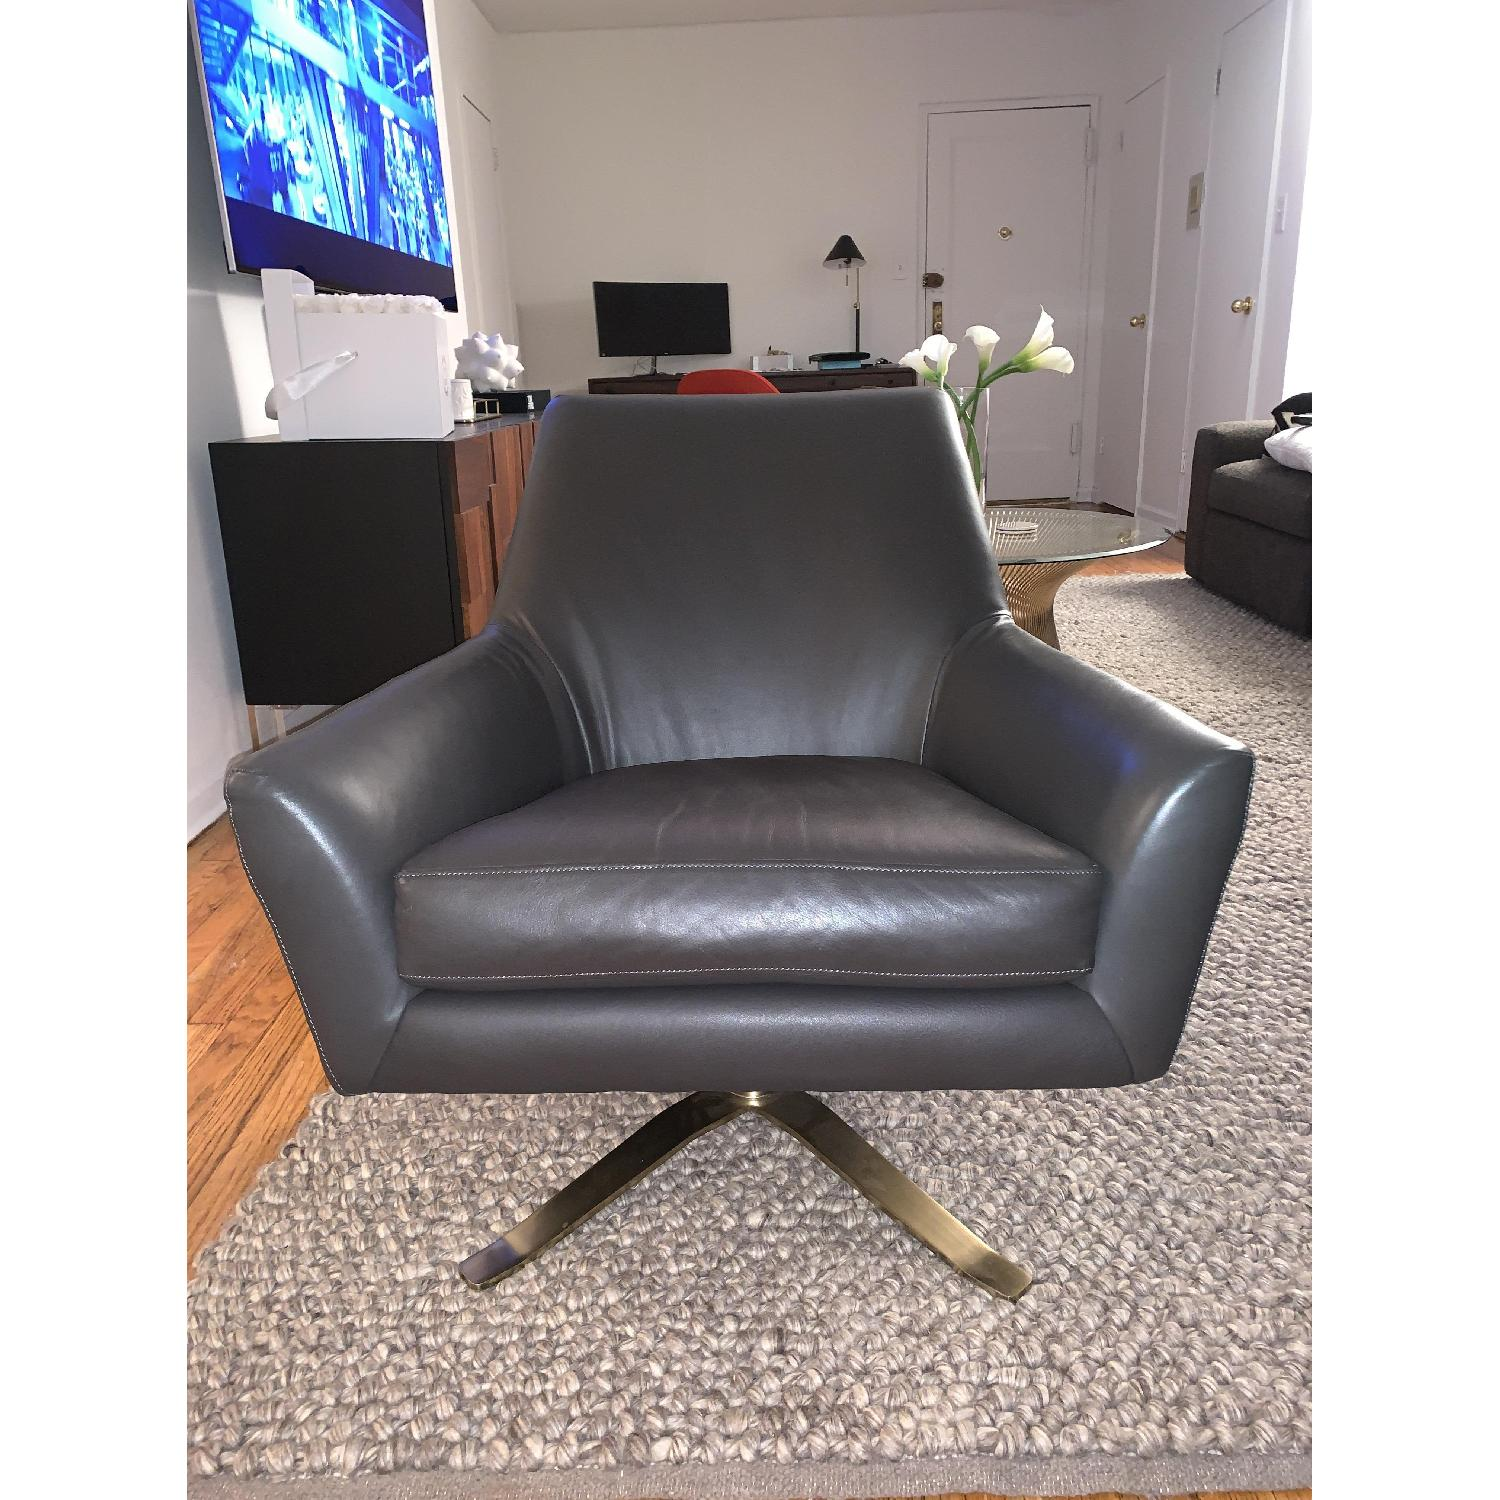 West Elm Lucas Dark Grey Swivel Base Chair w/ Brass Legs-3